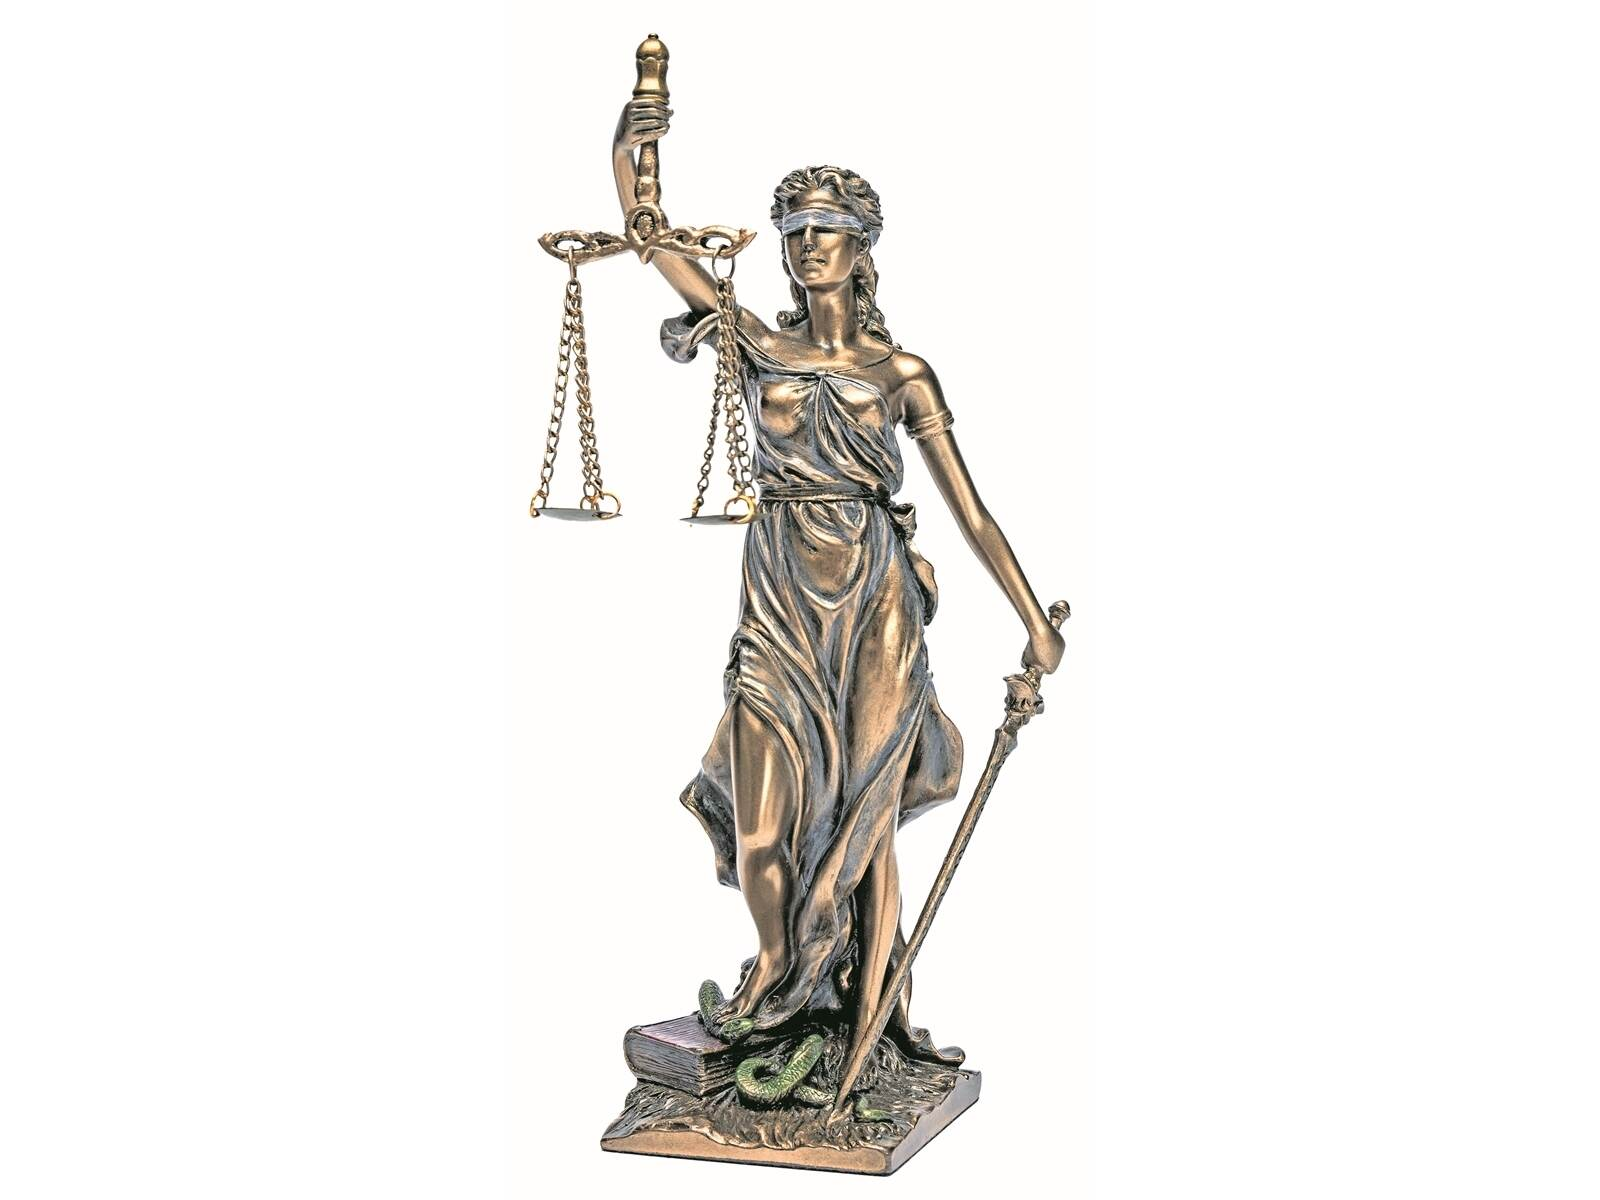 760_0900_102162_The_Statue_of_Justice_lady_justice_or_Iu.jpg